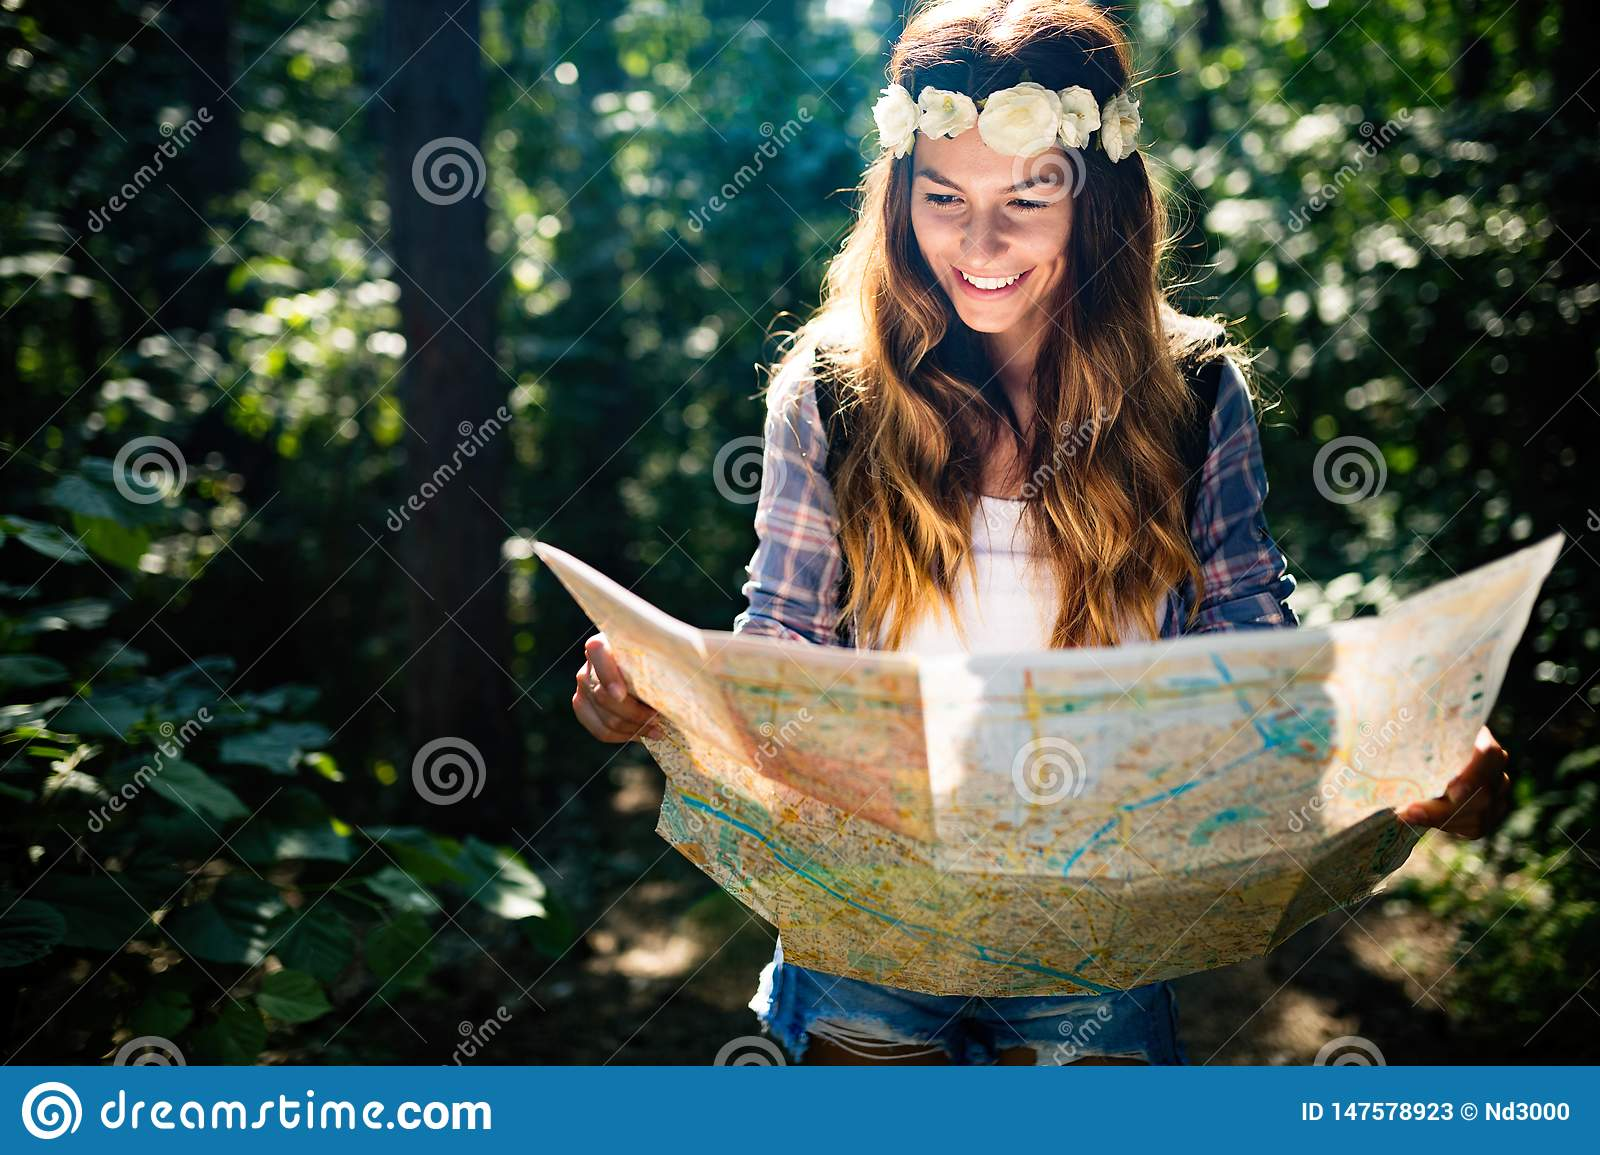 Hipster tourist woman with map hiking, lifestyle adventure concept